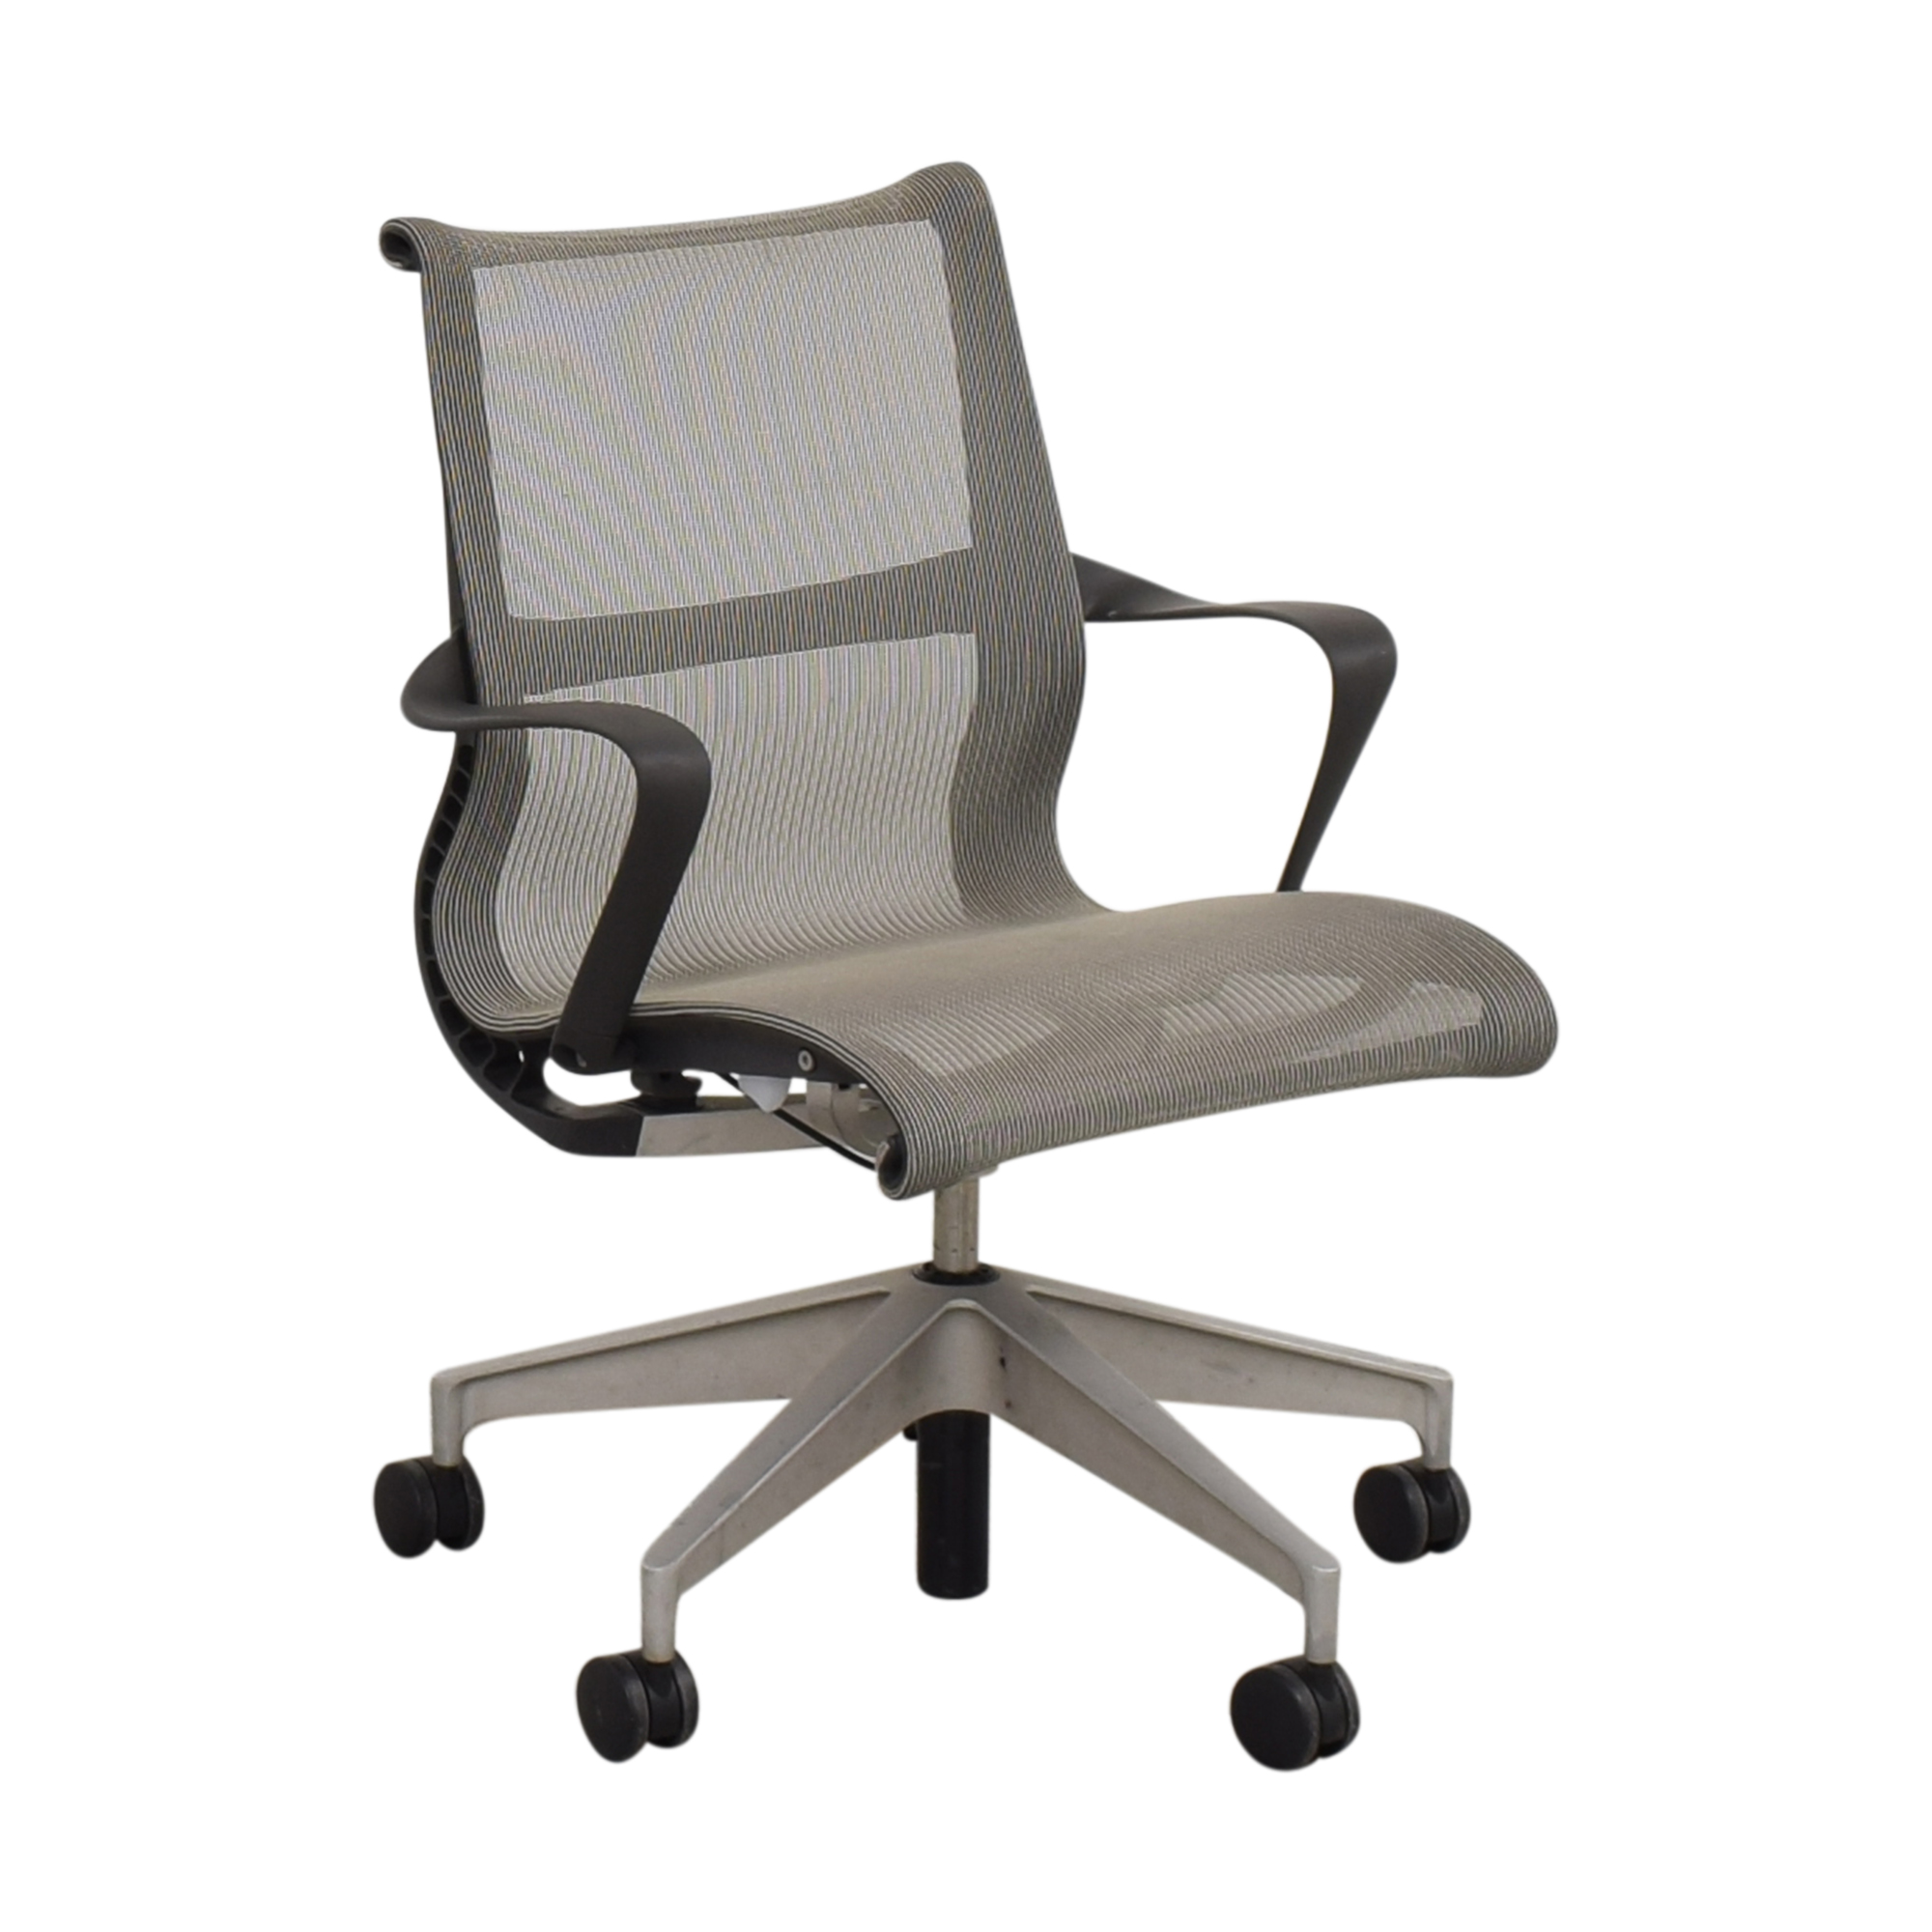 Herman Miller Herman Miller Setu Chair grey